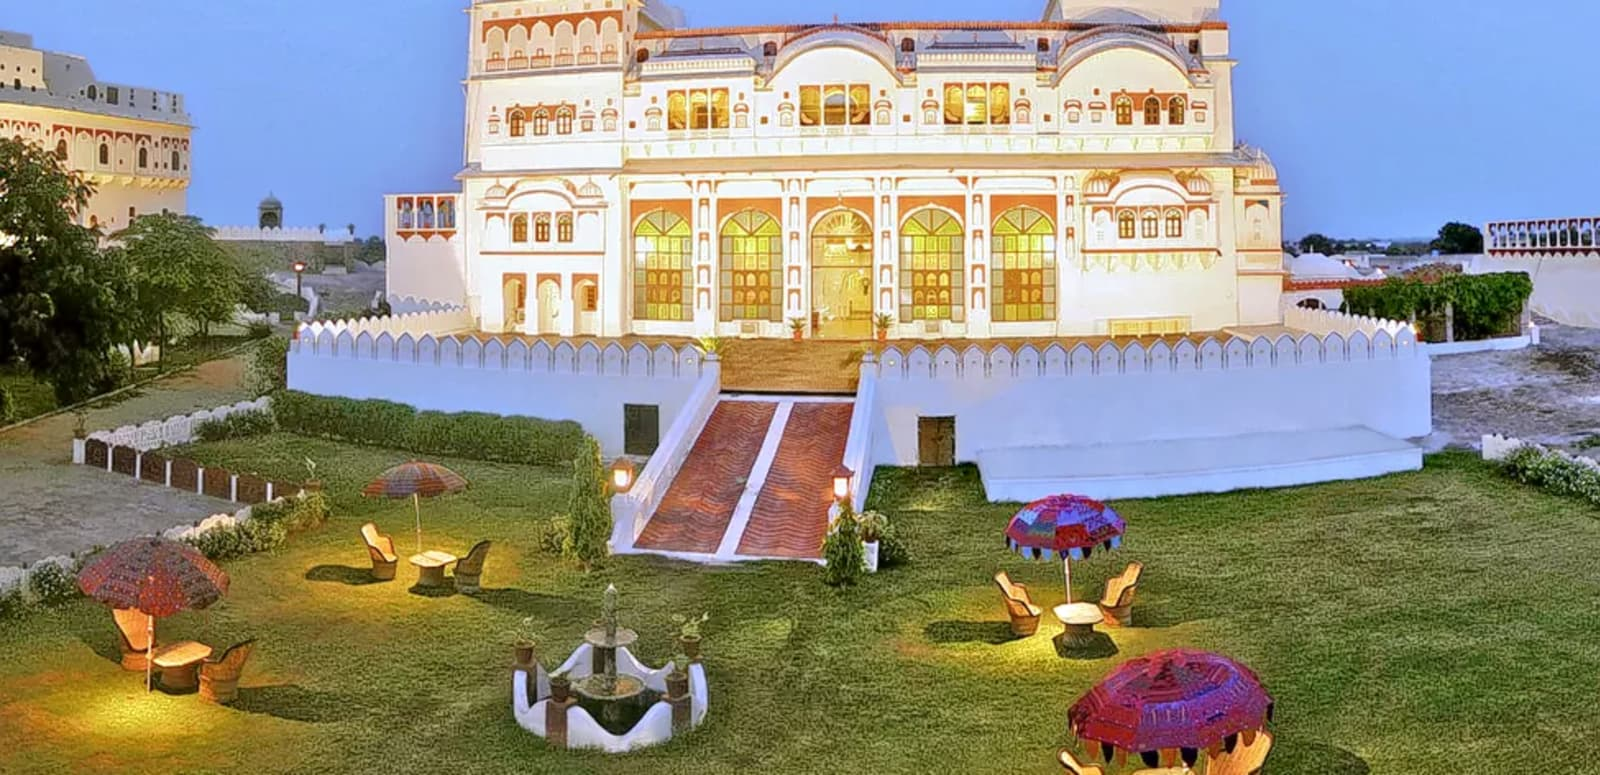 51 Best Resorts in Rajasthan - 2019 (Photos & 2100+ Reviews)